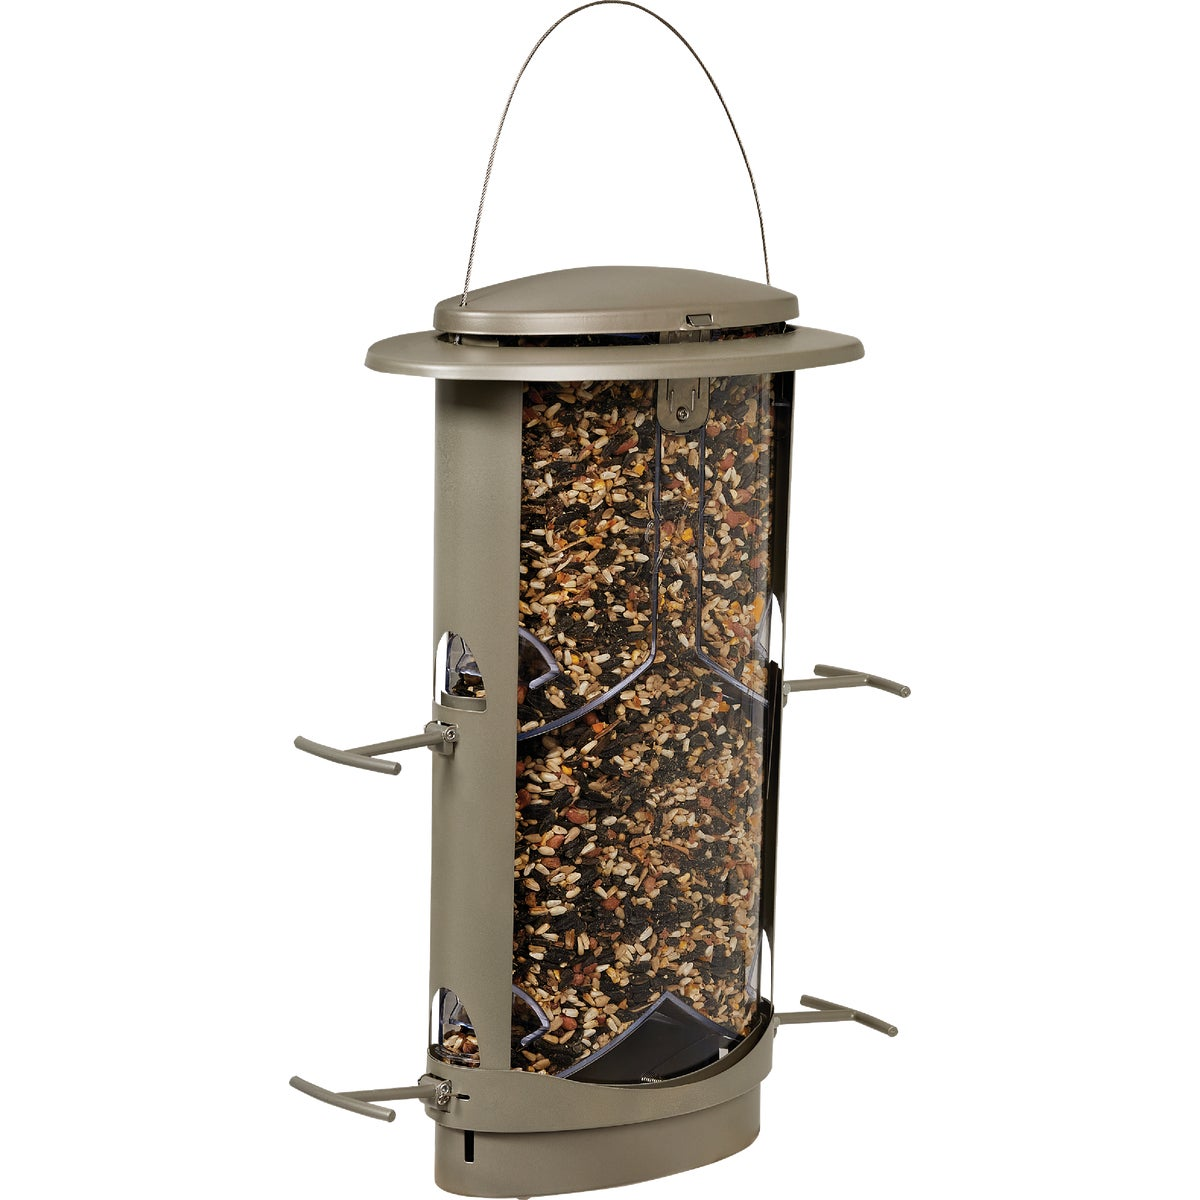 SQUIRREL X-1 BIRD FEEDER